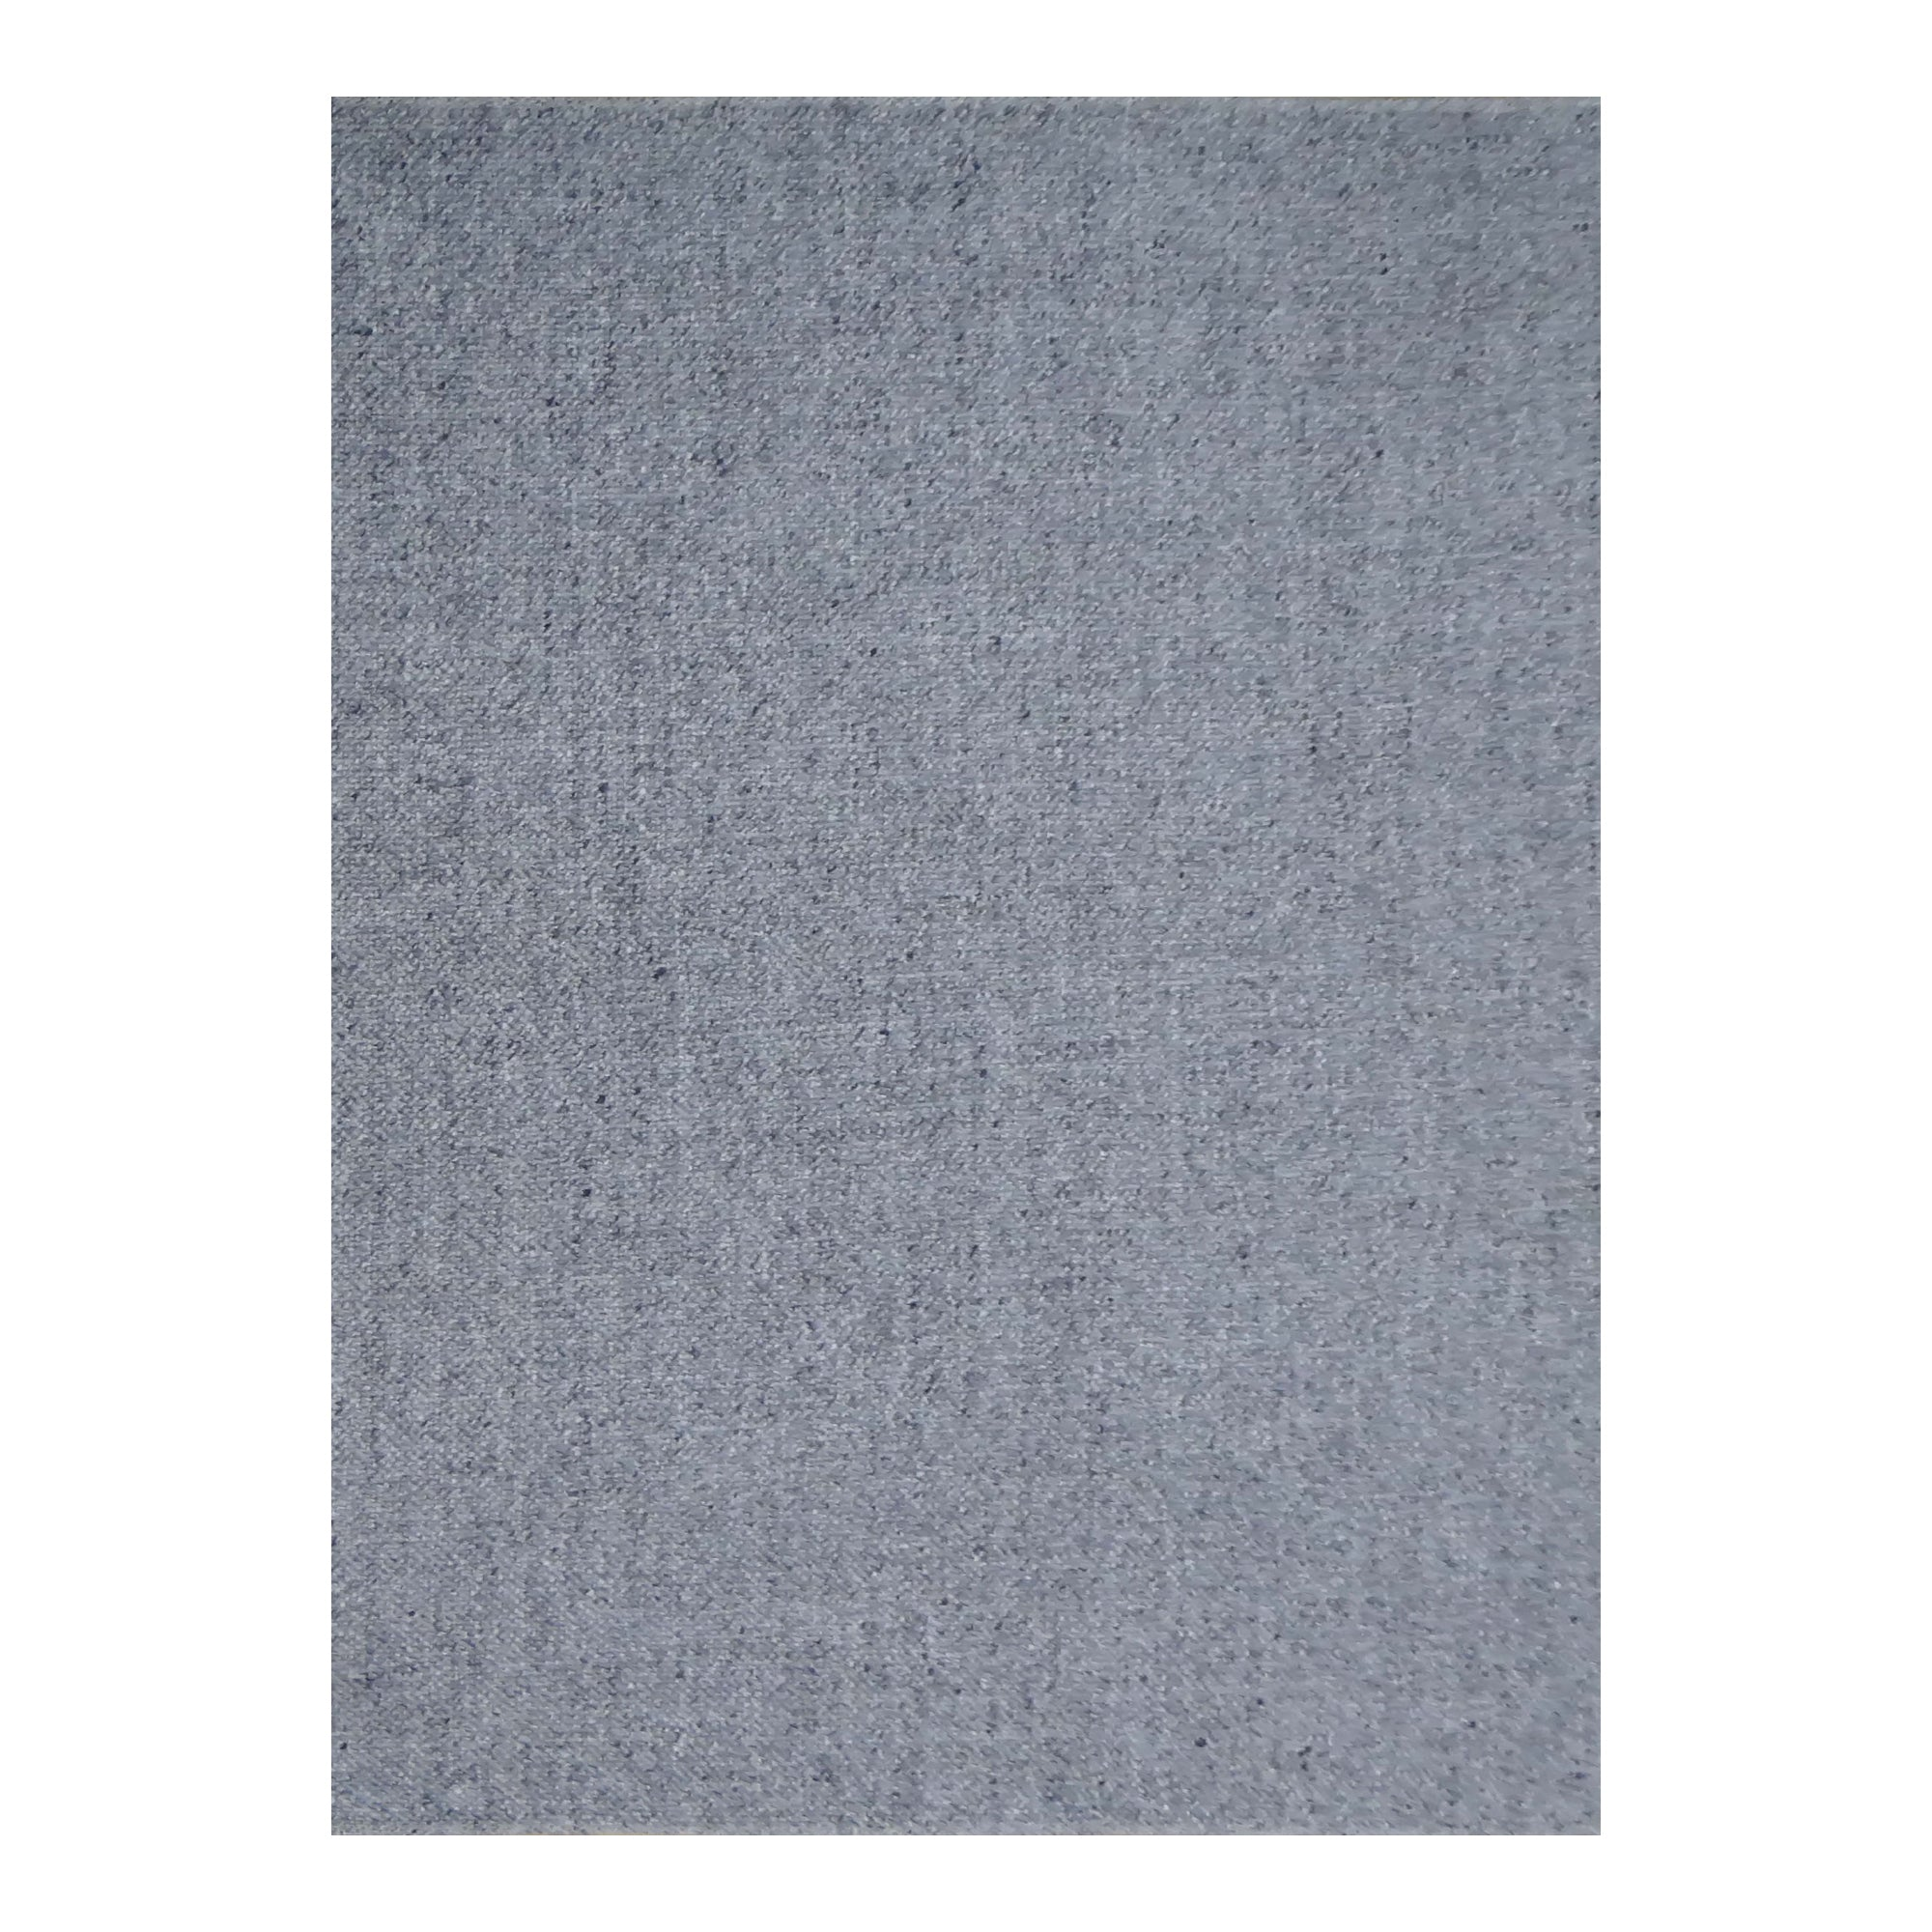 AMARILLO RUG 8X10, Silver - Tops-Dress